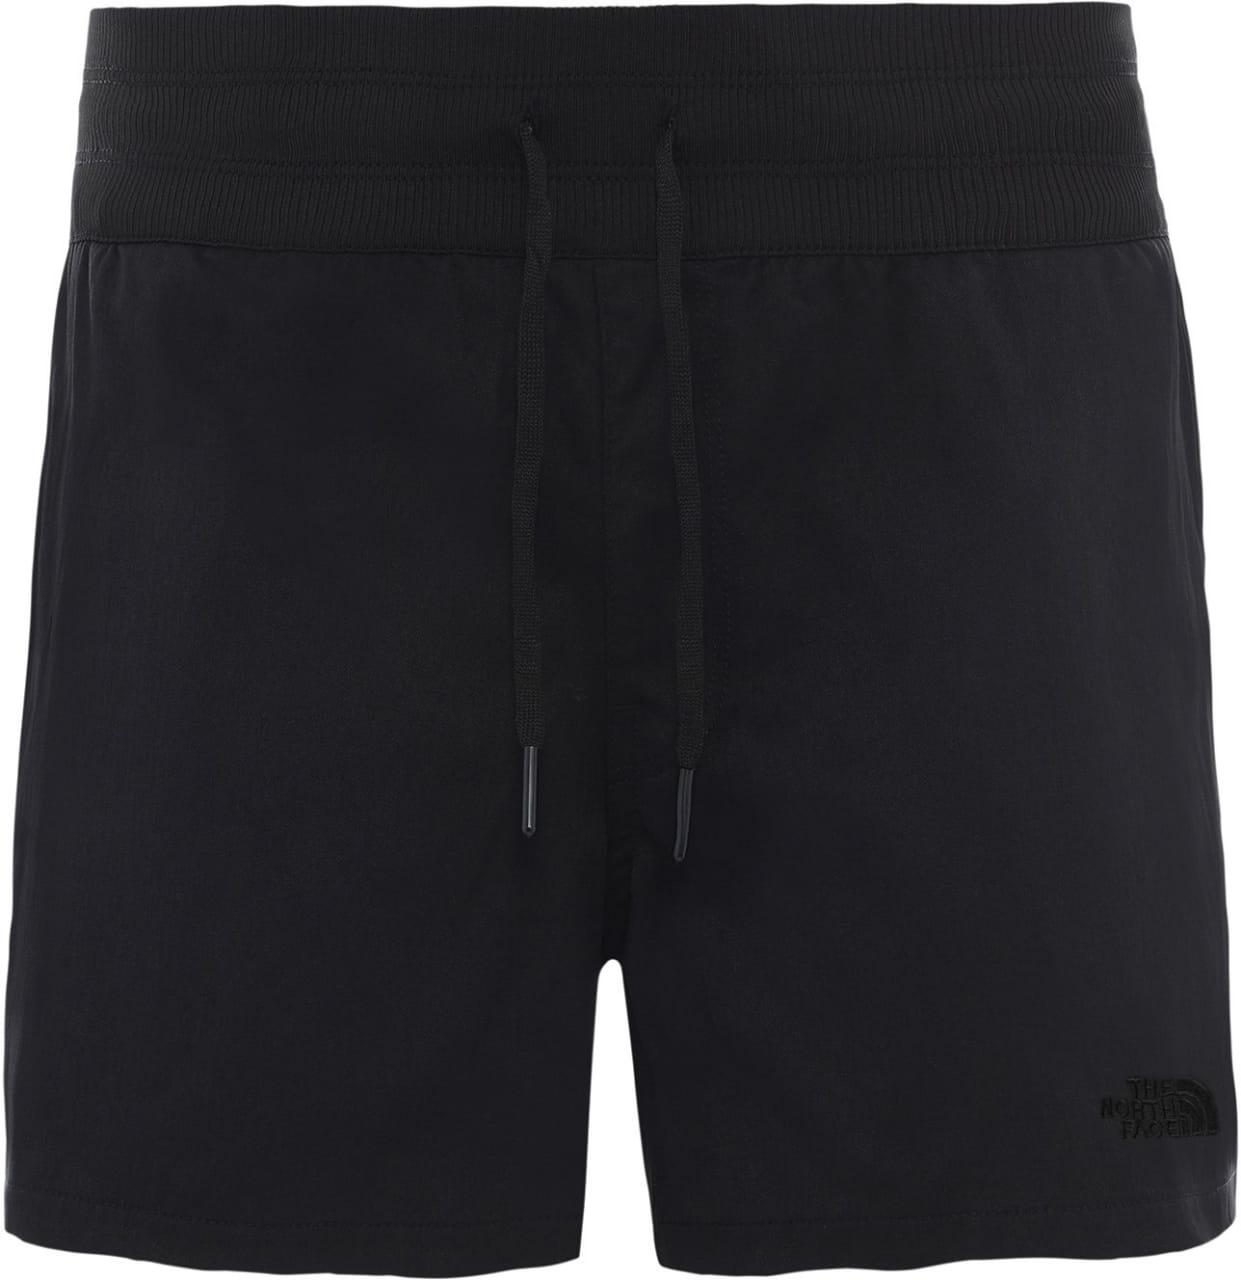 Shorts The North Face Women's Aphrodite Shorts